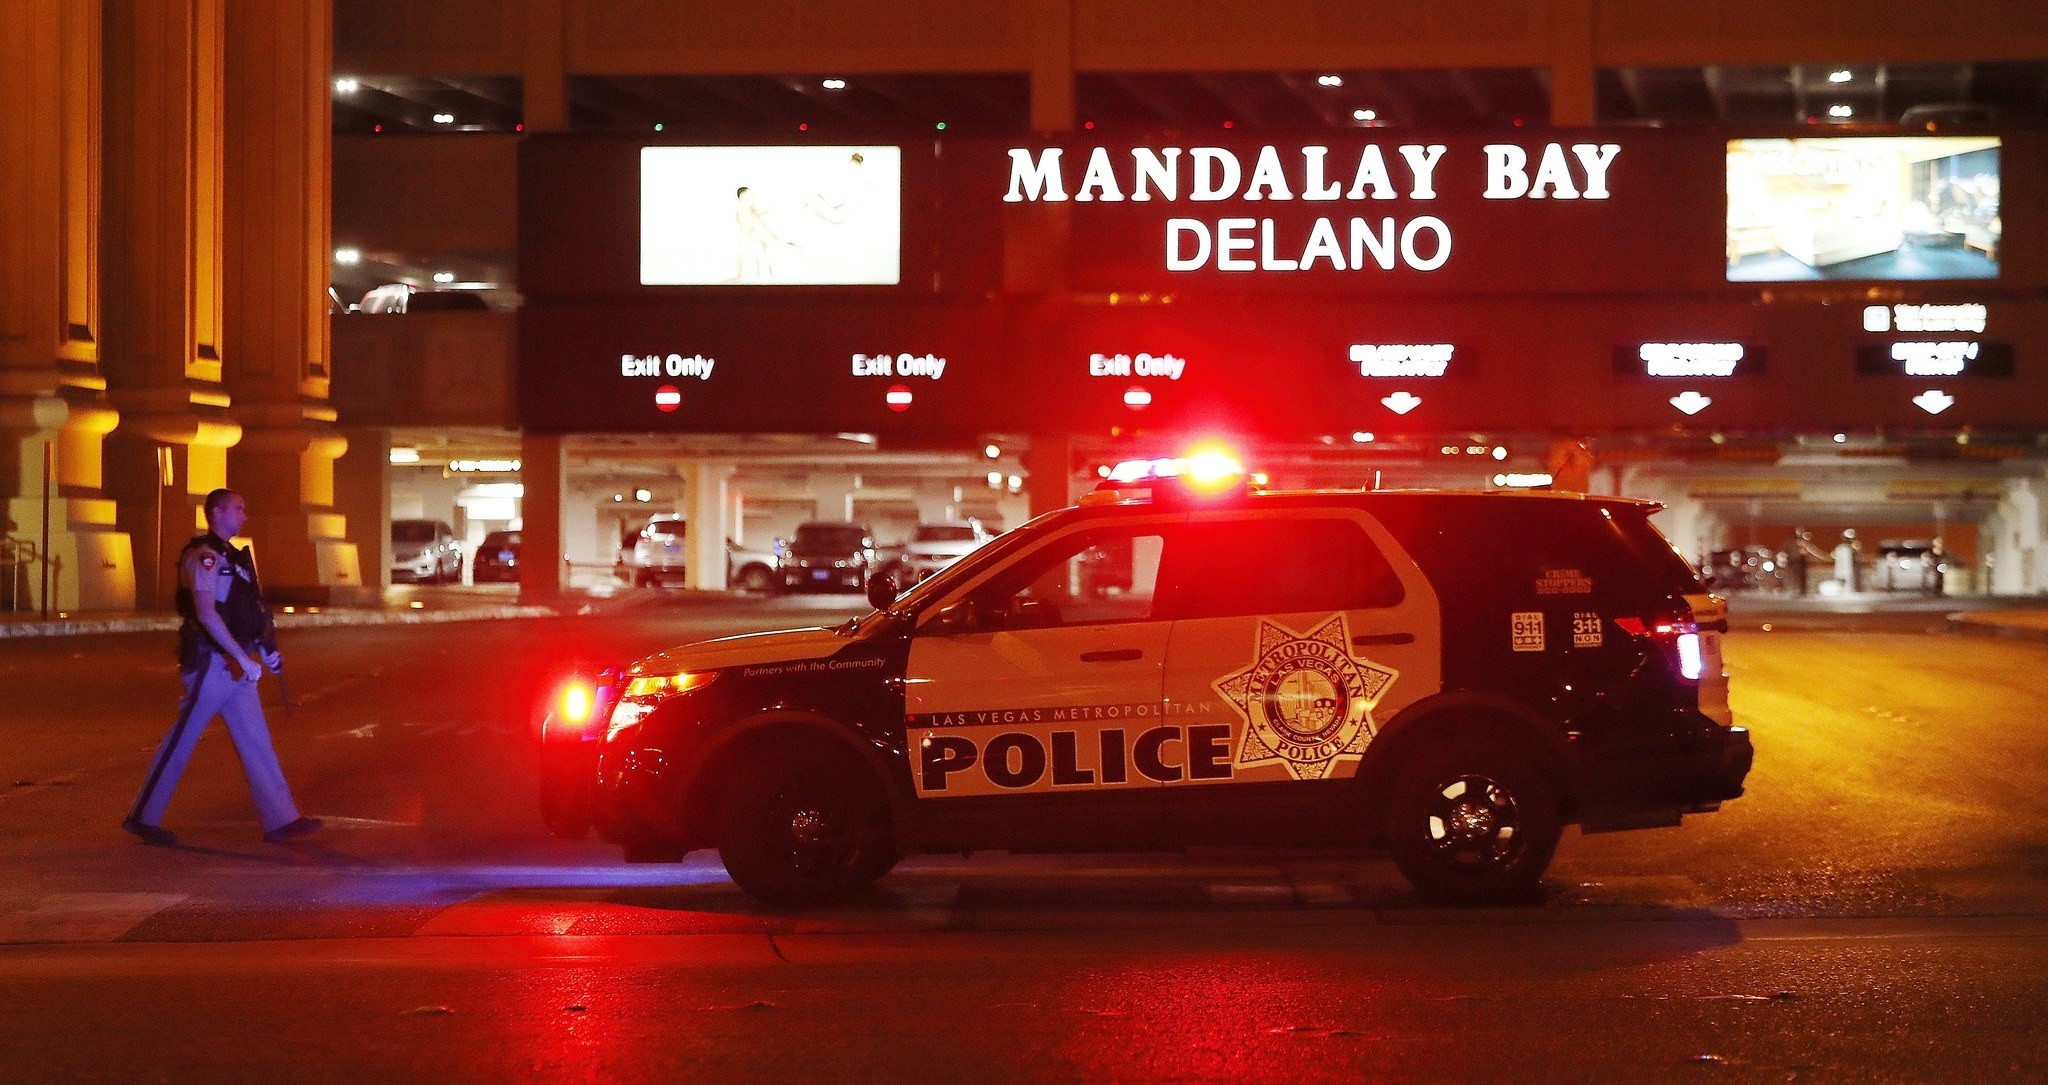 Las Vegas Metropolitan Police outside the Mandalay Bay hotel near the scene of the mass shooting at the Route 91 Harvest festival on Las Vegas Boulevard in Nevada, Oct. 2 2017. (EPA Photo)